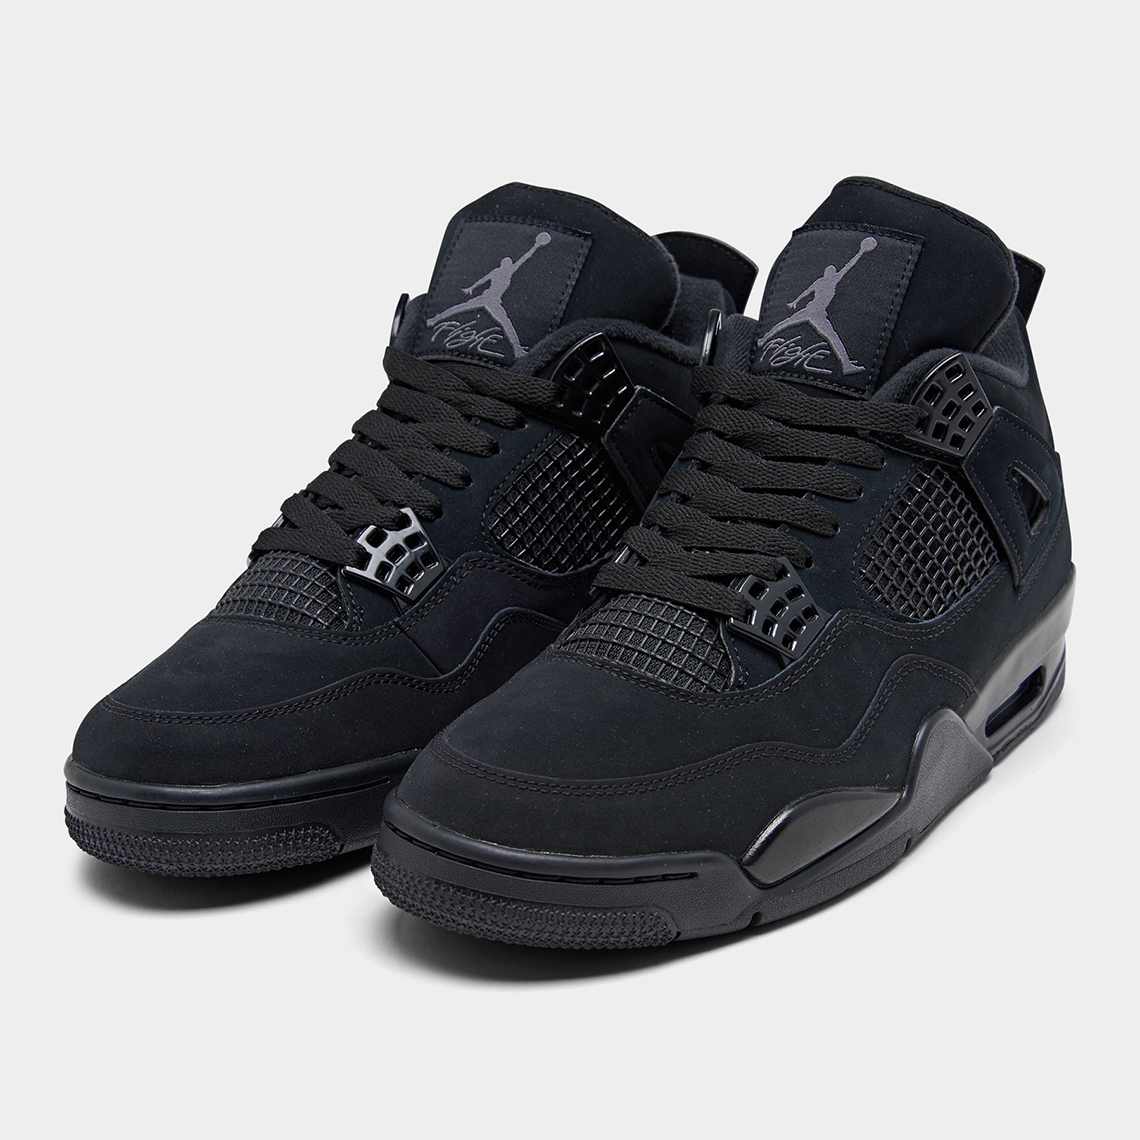 Como Restricción a menudo  Air Jordan 4 Black Cat CU1110-010 Store List | SneakerNews.com